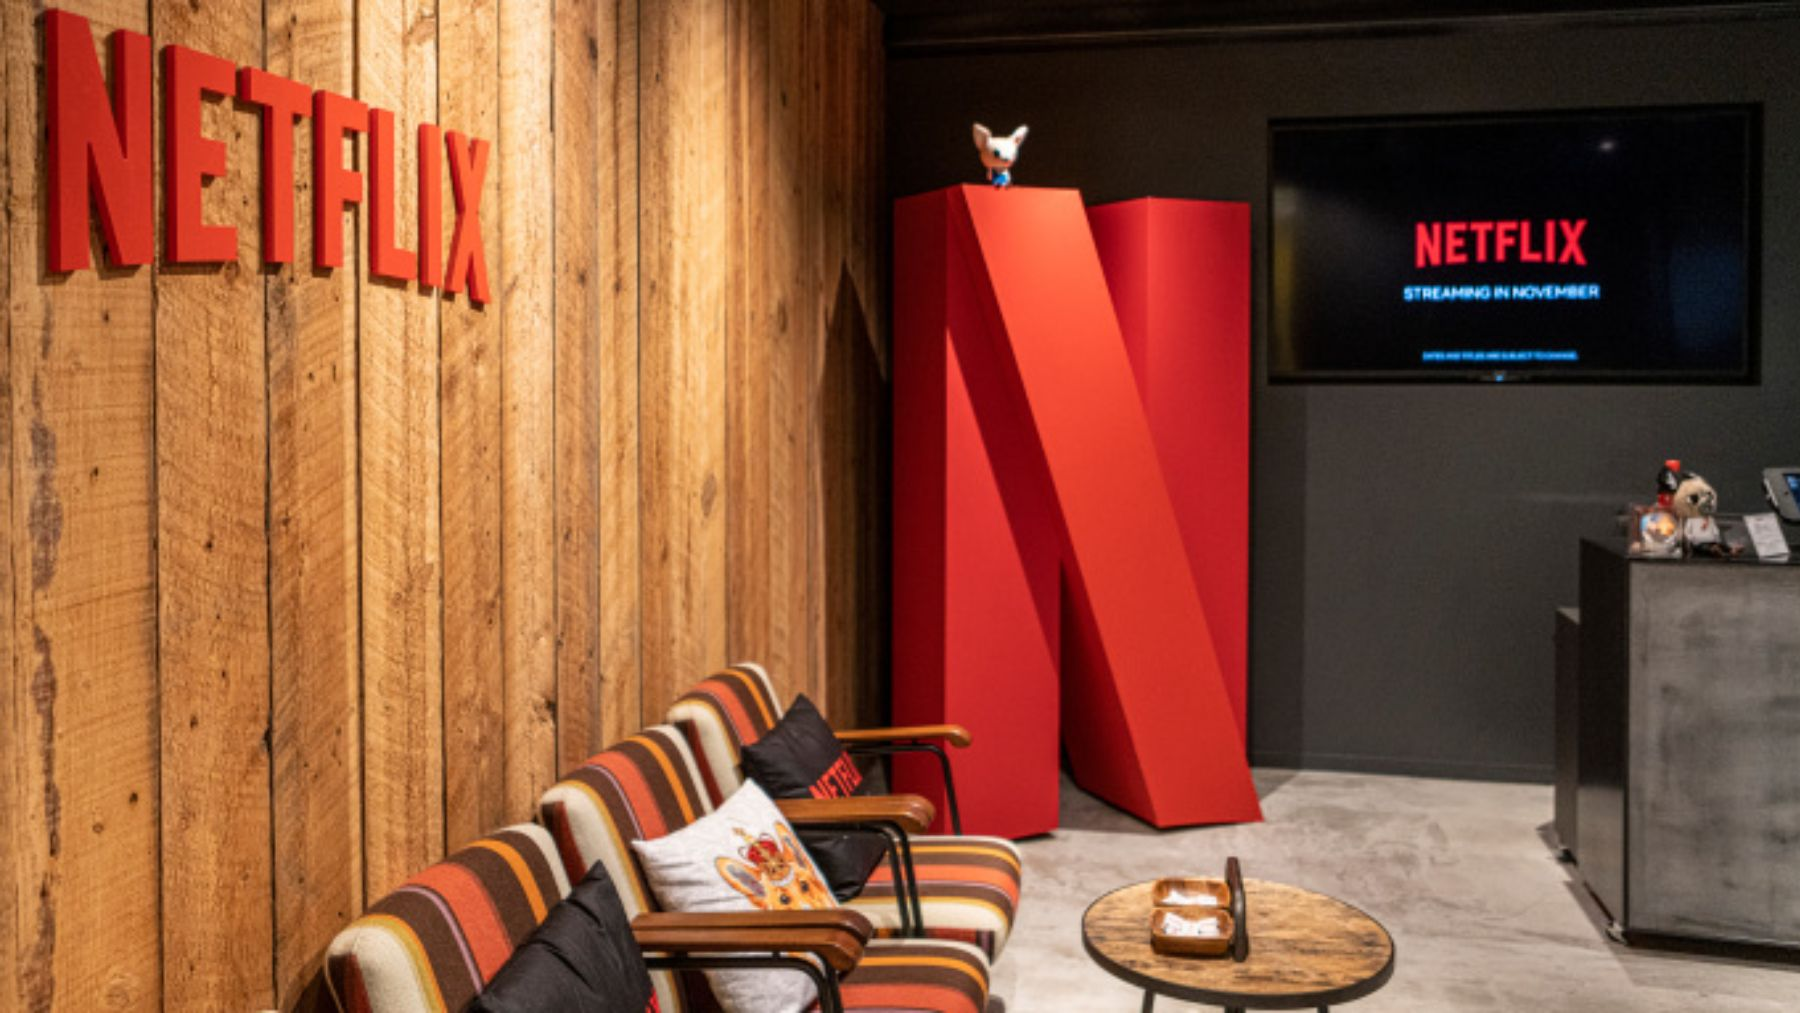 Netflix expands vaccine commitment to all of its employees